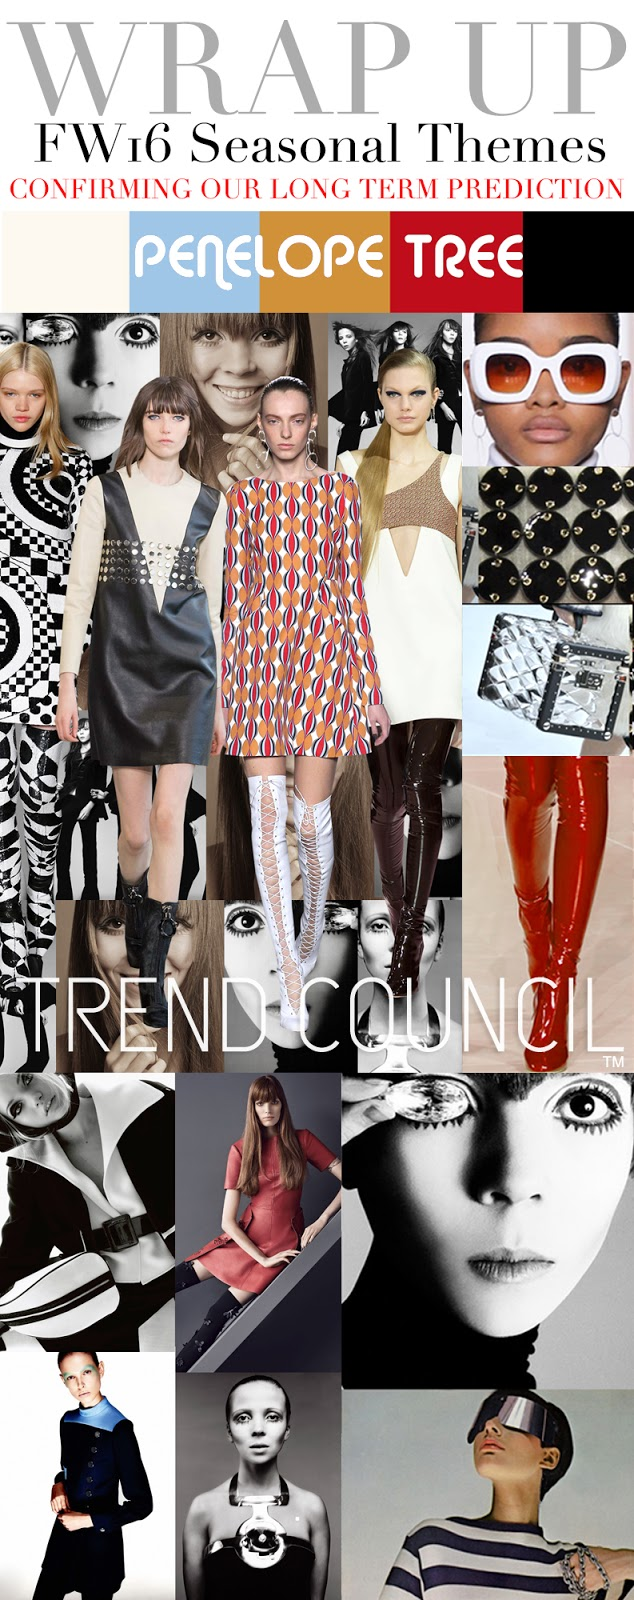 TRENDS // TREND COUNCIL - WOMEN'S AND MEN'S . FALL 2016